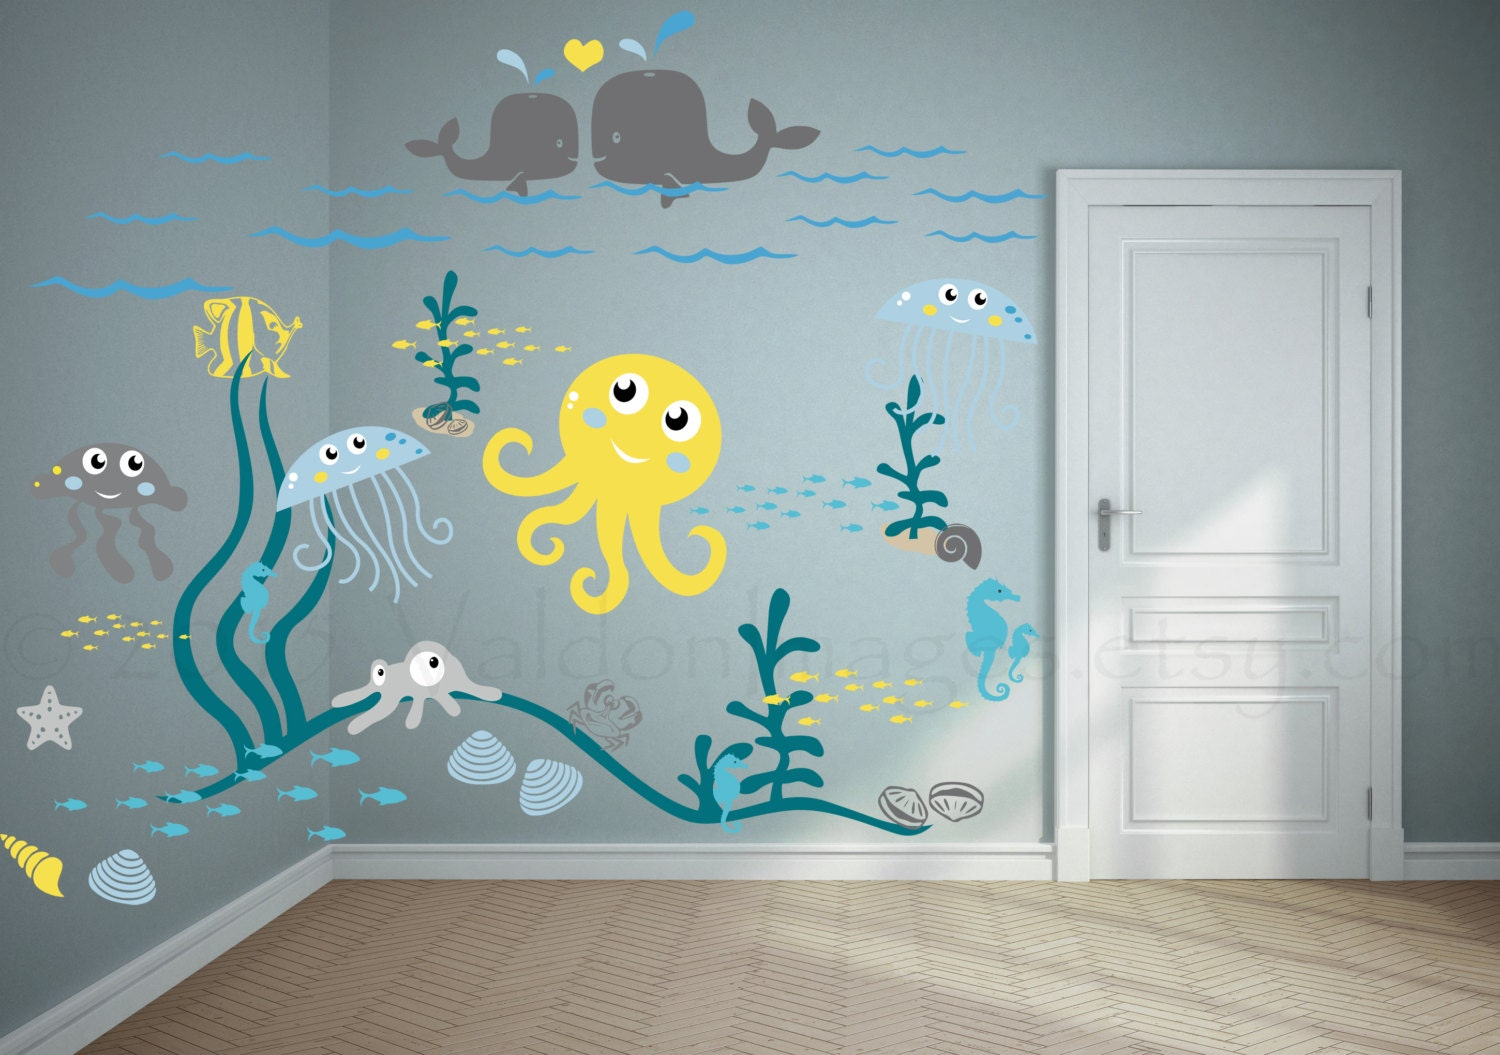 Jellyfish adventure wall decal nursery wall decal kids zoom amipublicfo Image collections